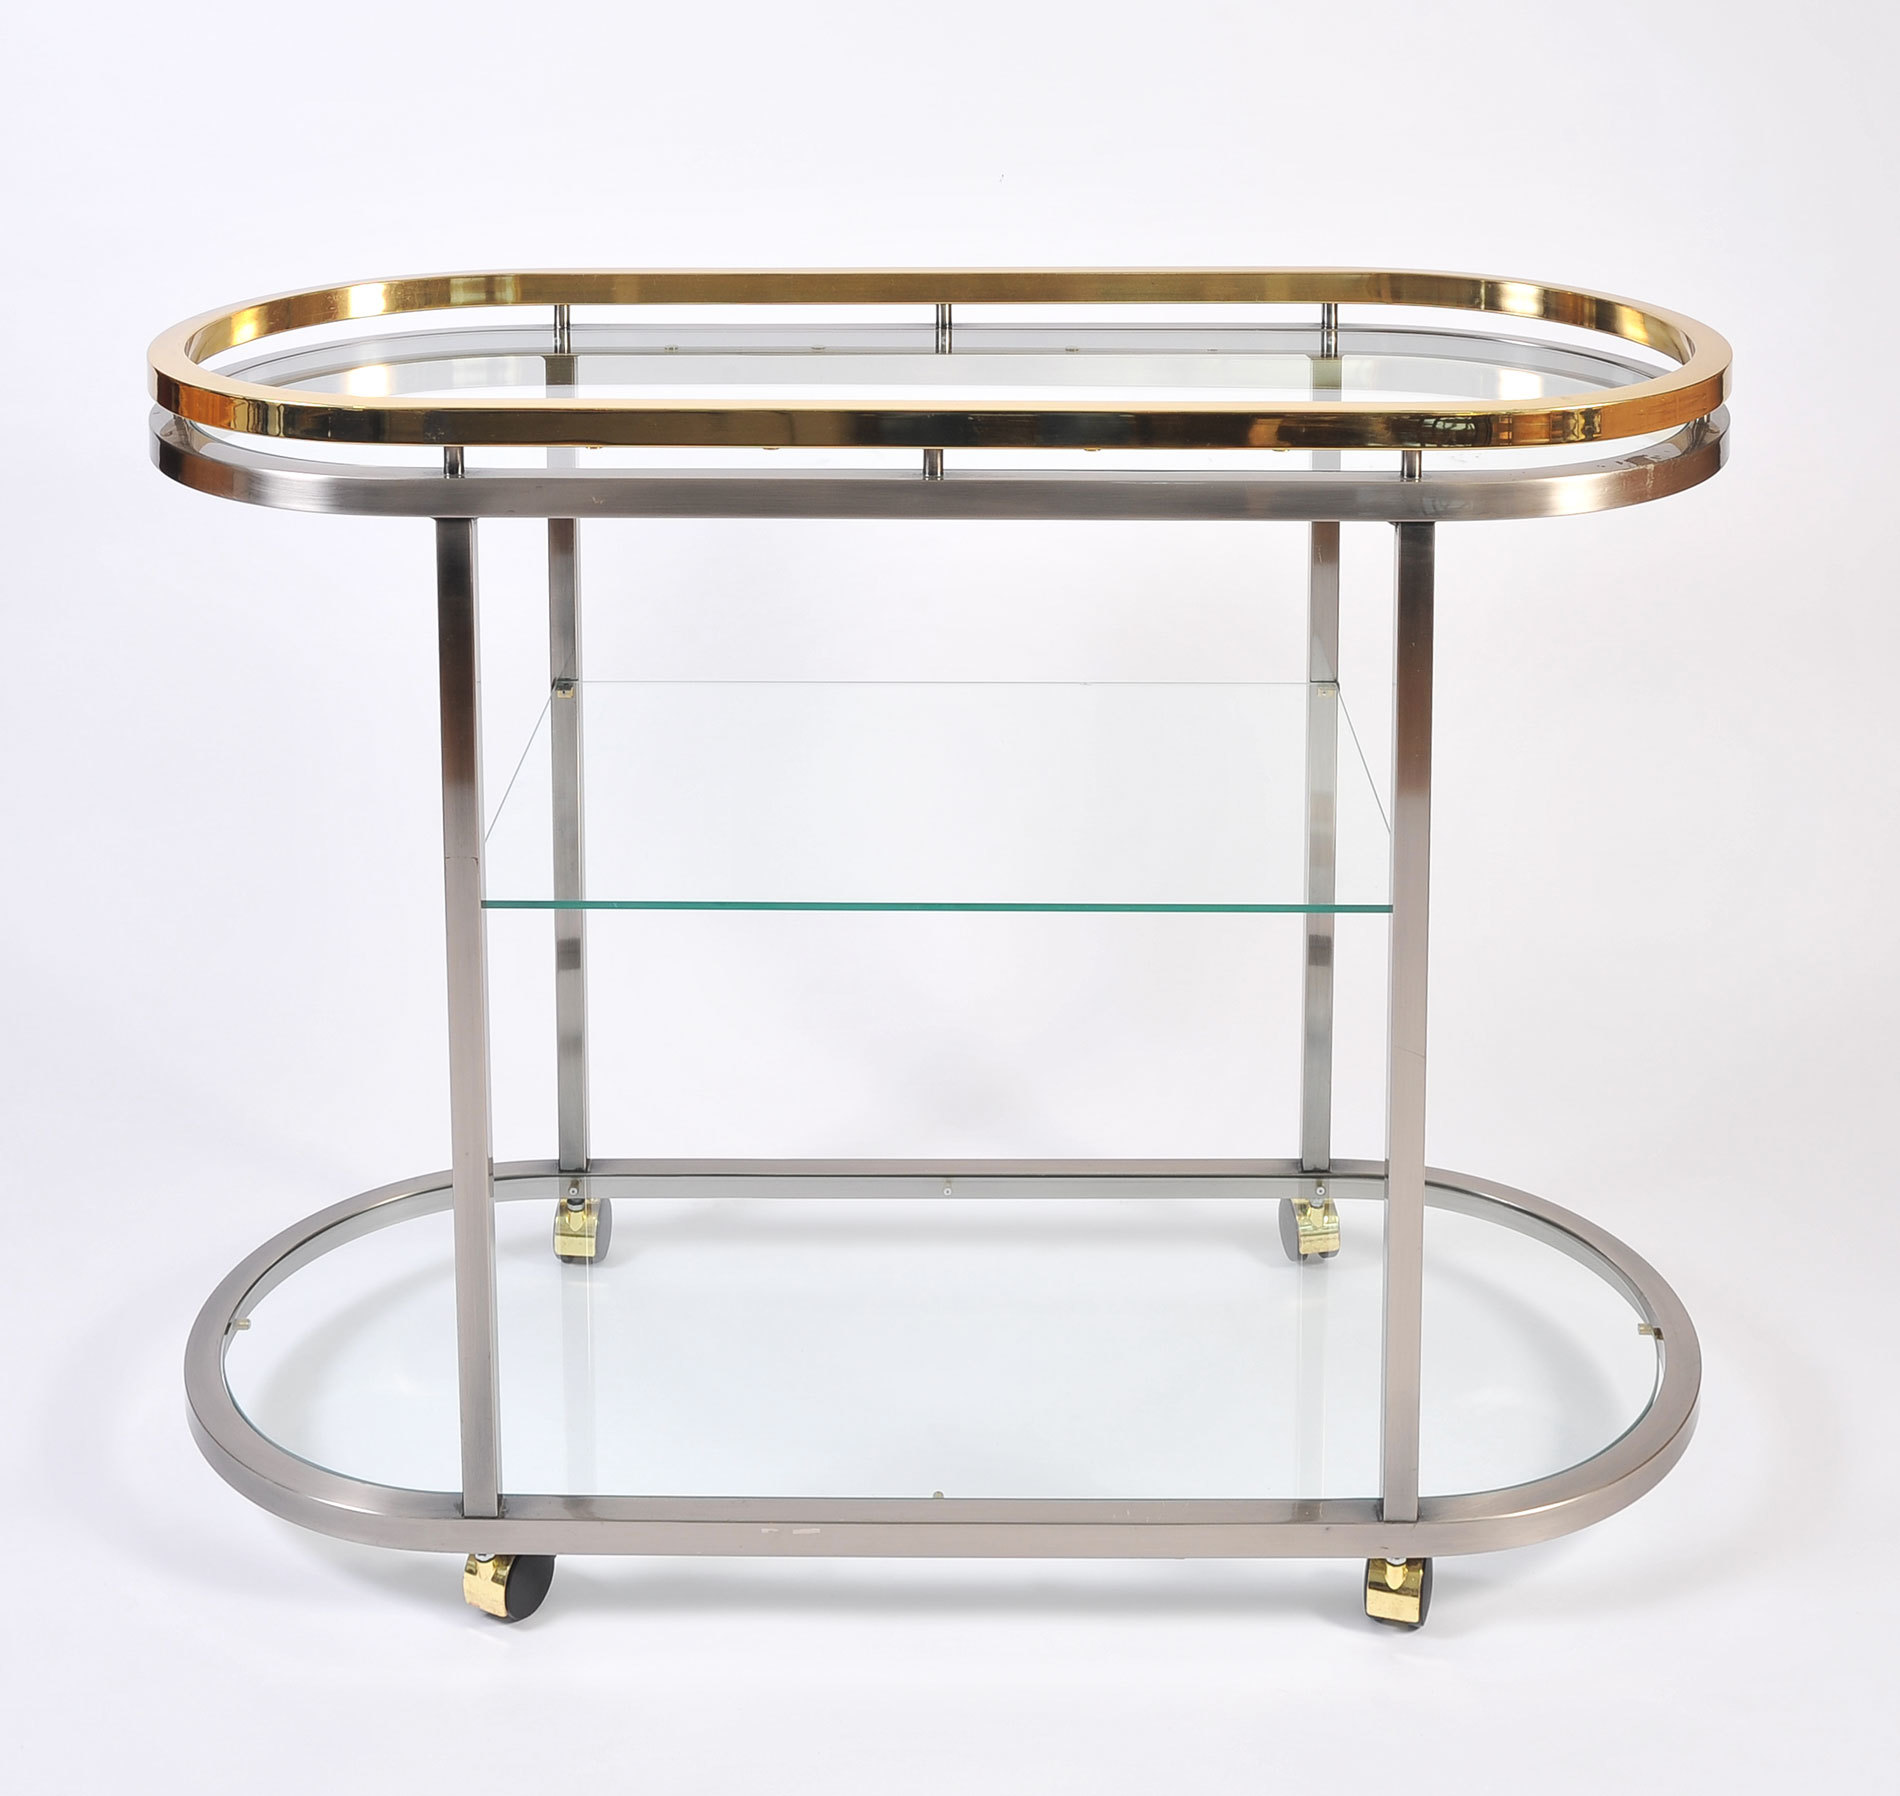 Us Chrome Brass Trolley 03